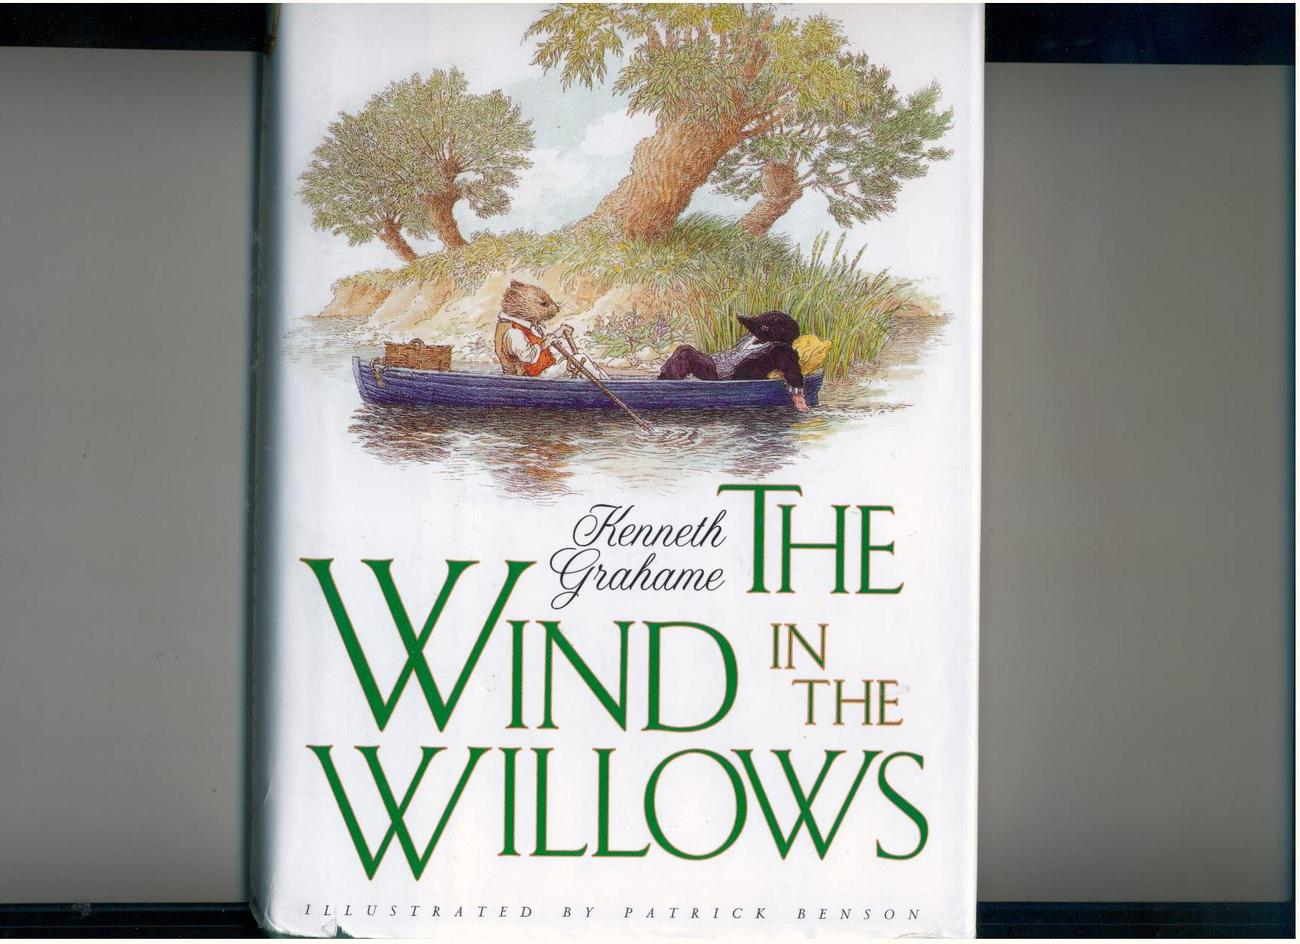 Grahame--WIND IN THE WILLOWS--1995, 1st U.S. pr. of newly illustrated edition